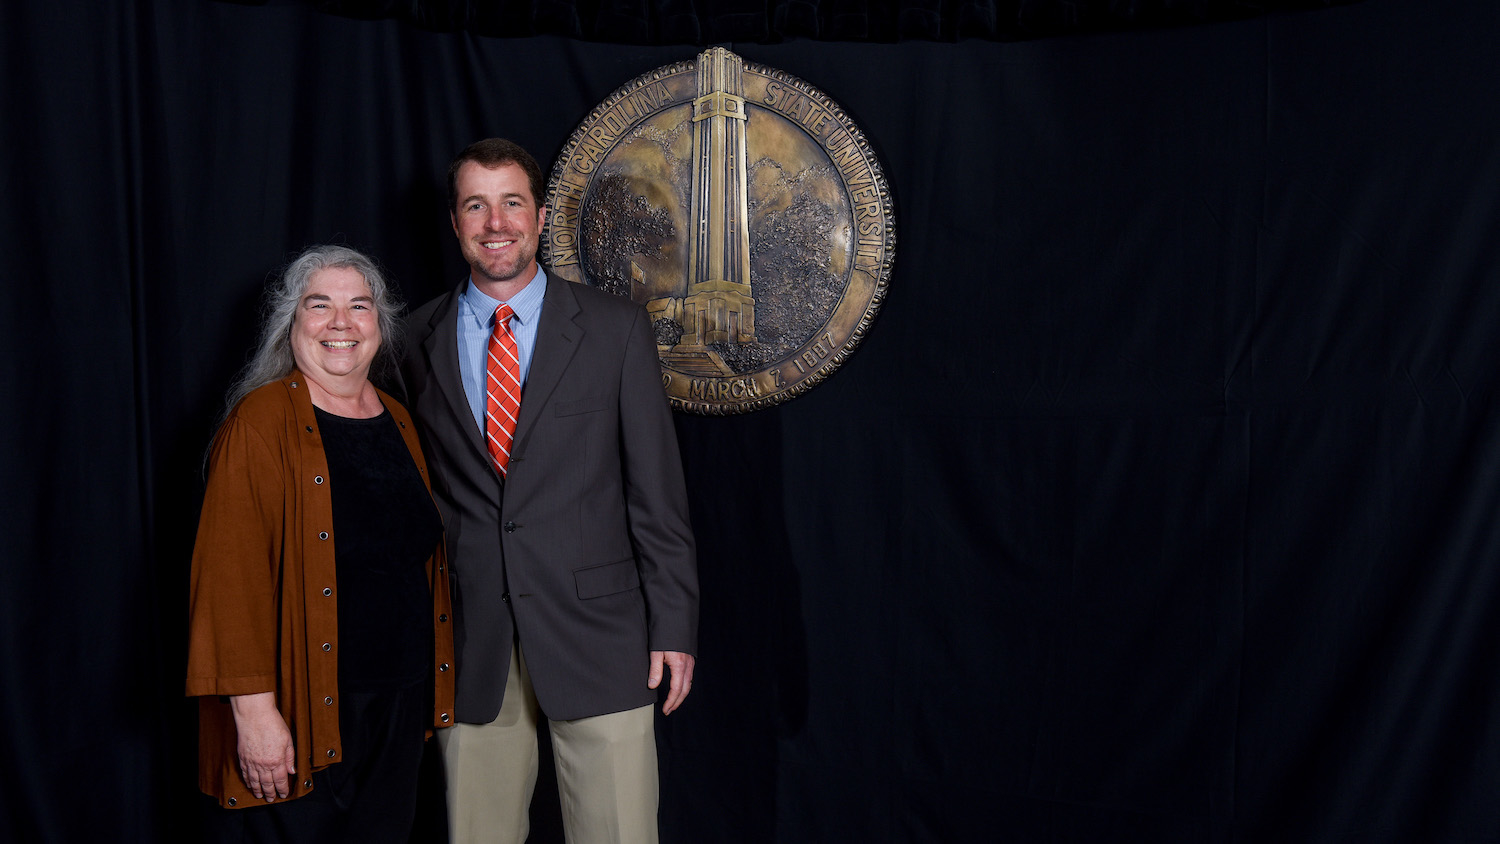 DELTA's Cathi Dunnagan pictured with Lee Ivy, 2017 Gertrude Cox Award Recipient. Photo: Becky Kirkland